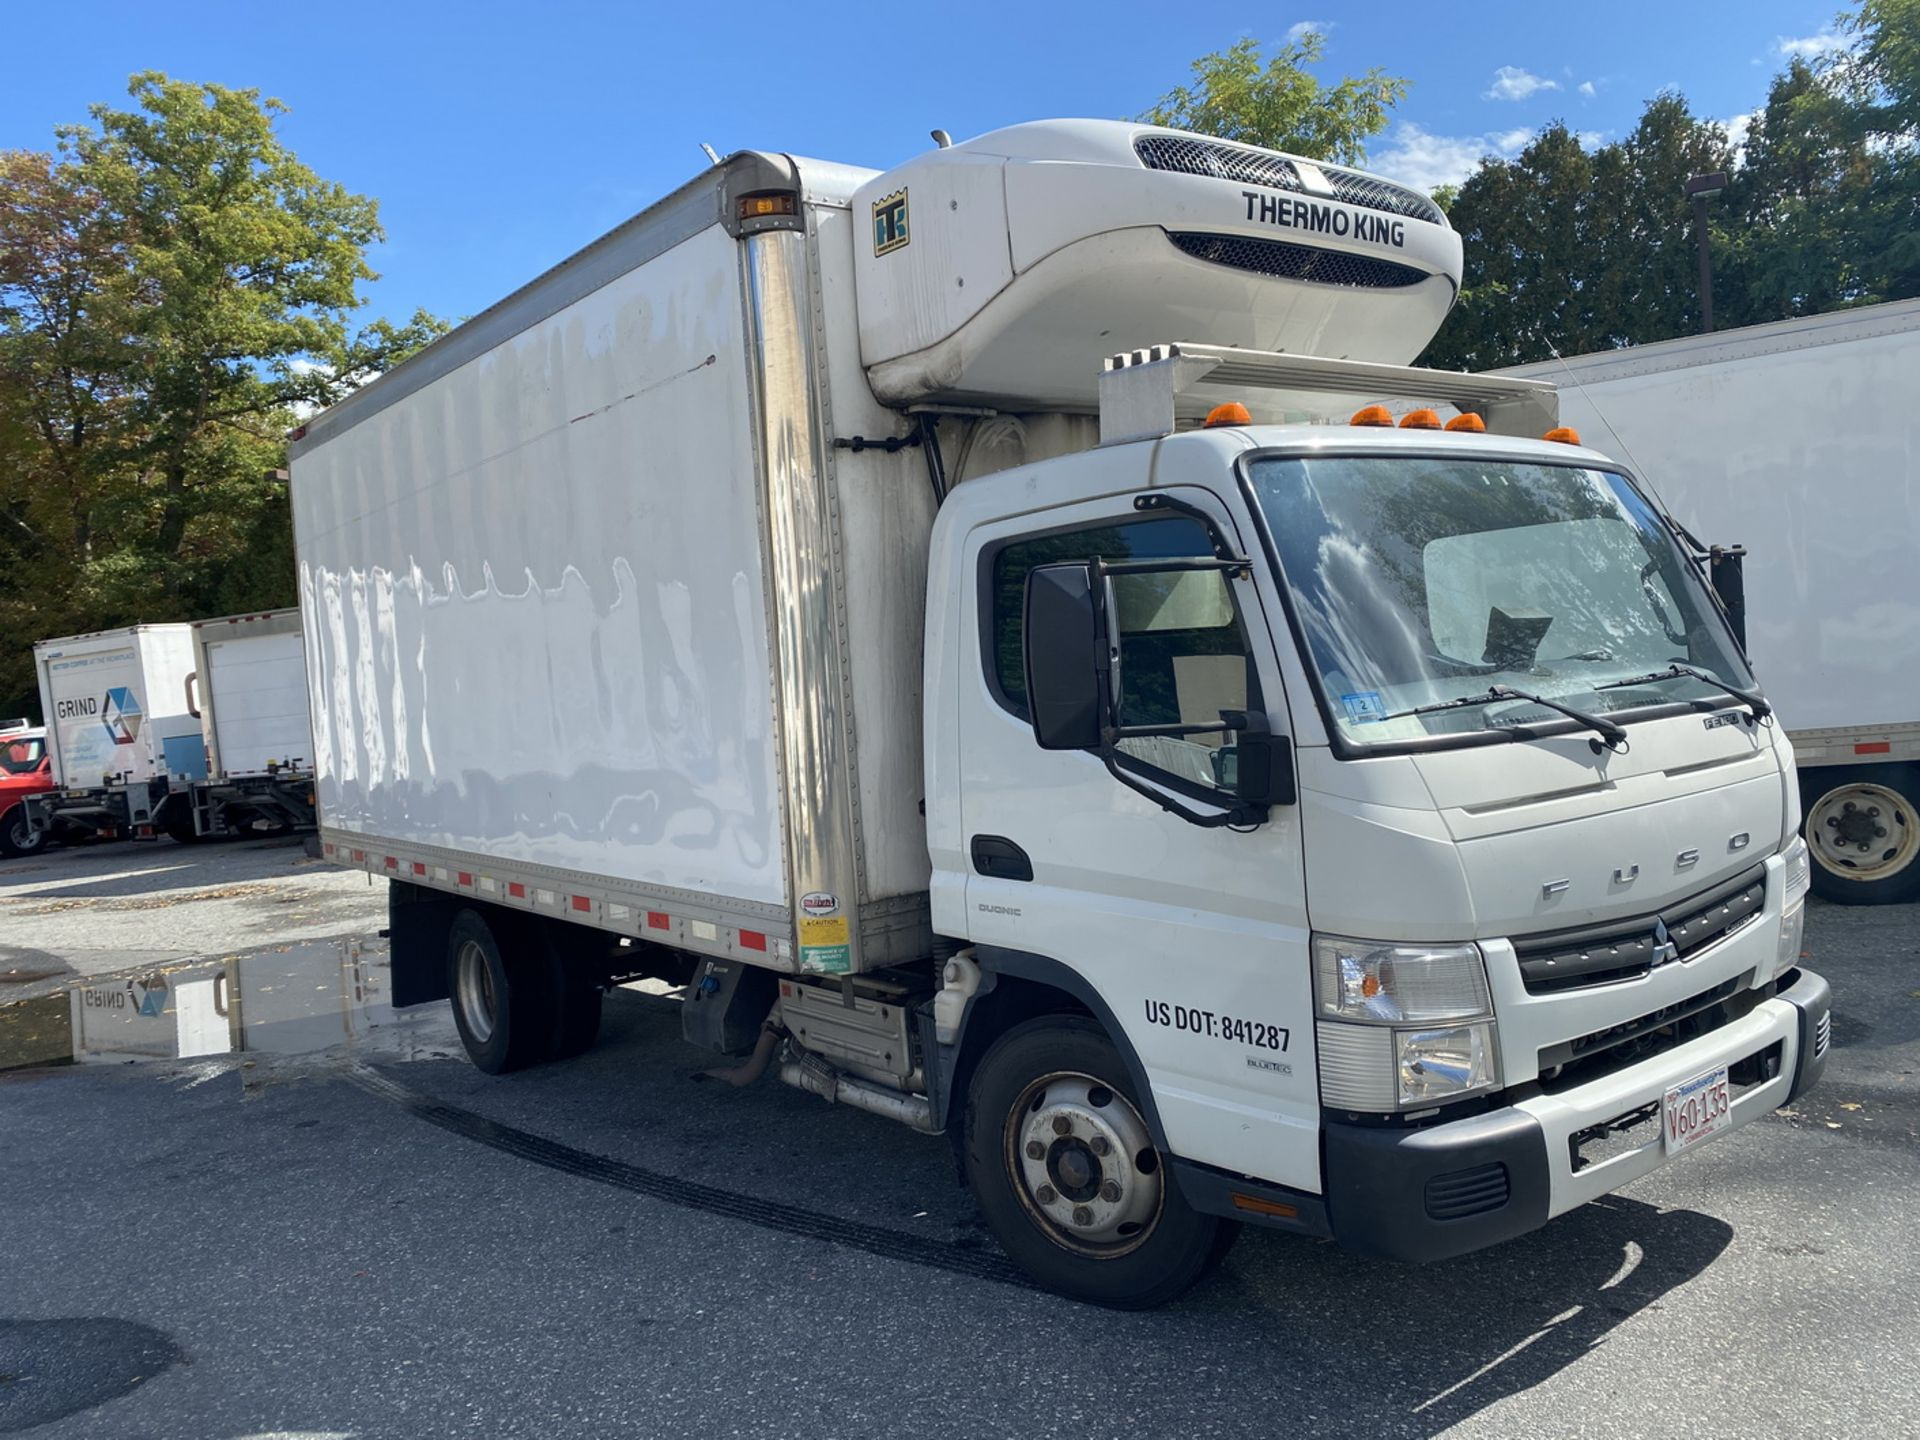 2014 Fuso refrigerated truck - Image 2 of 9